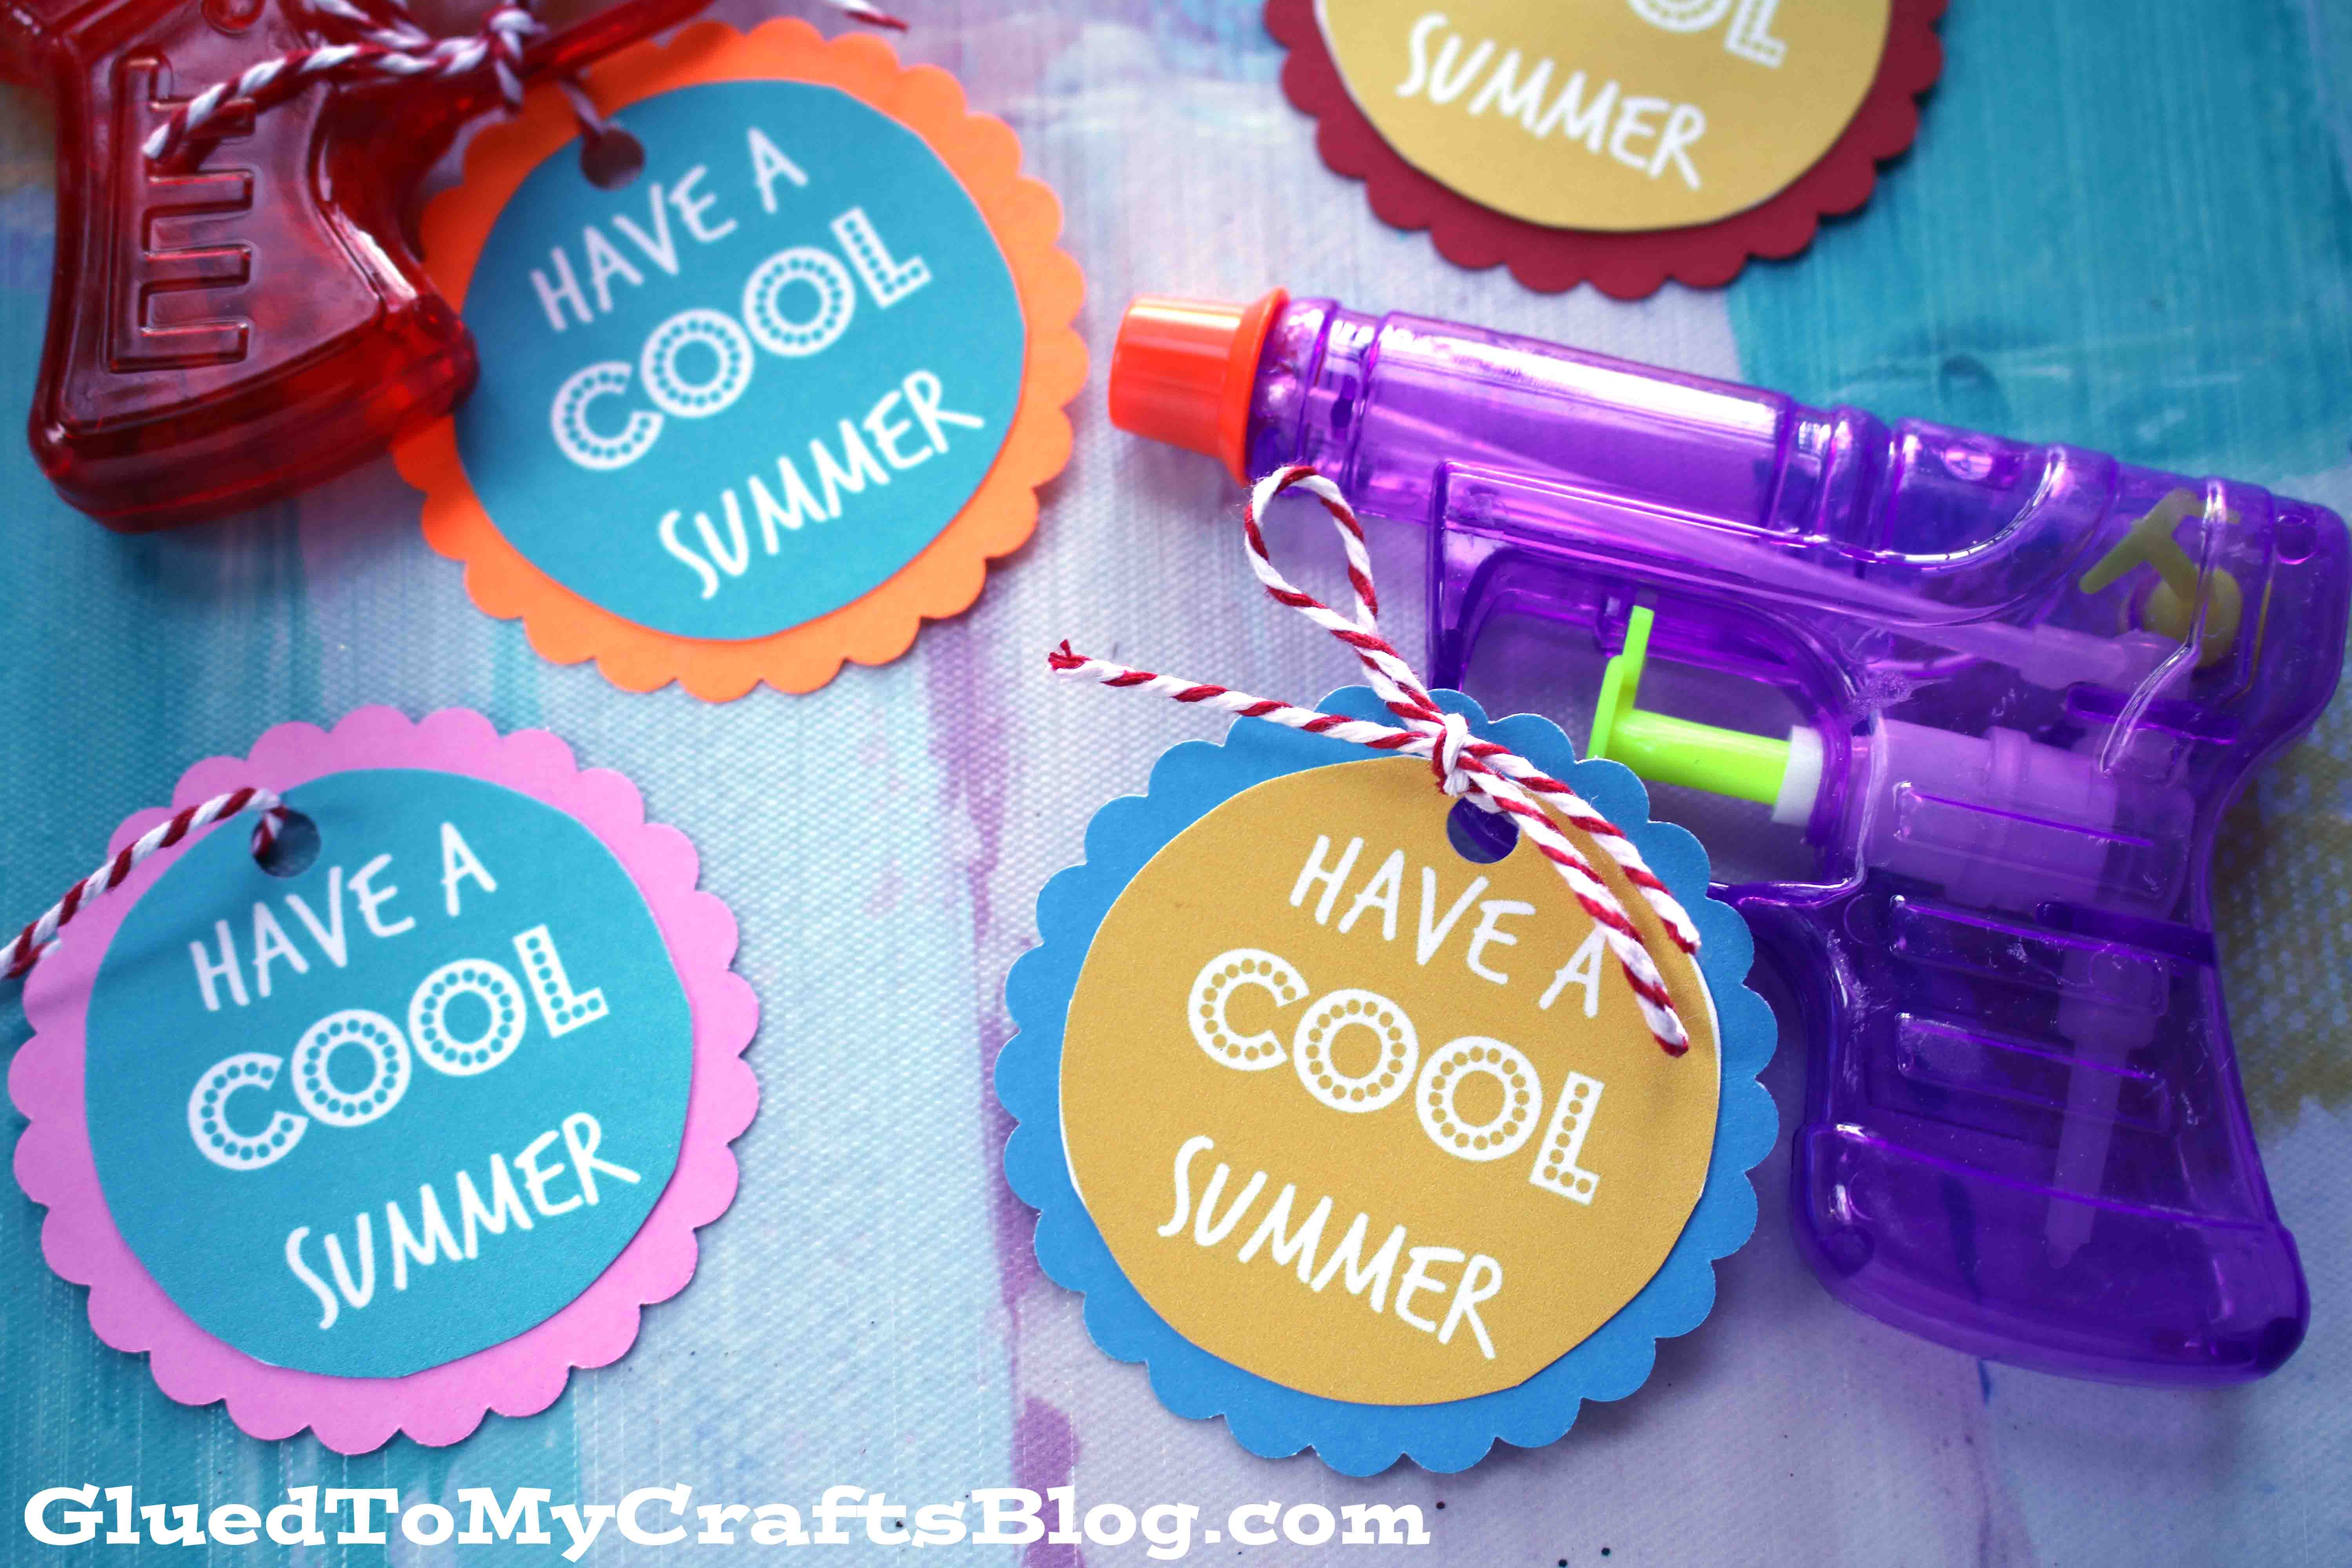 photograph regarding Have a Cool Summer Printable identified as Summer time Squirt Gun Tags Absolutely free Printable